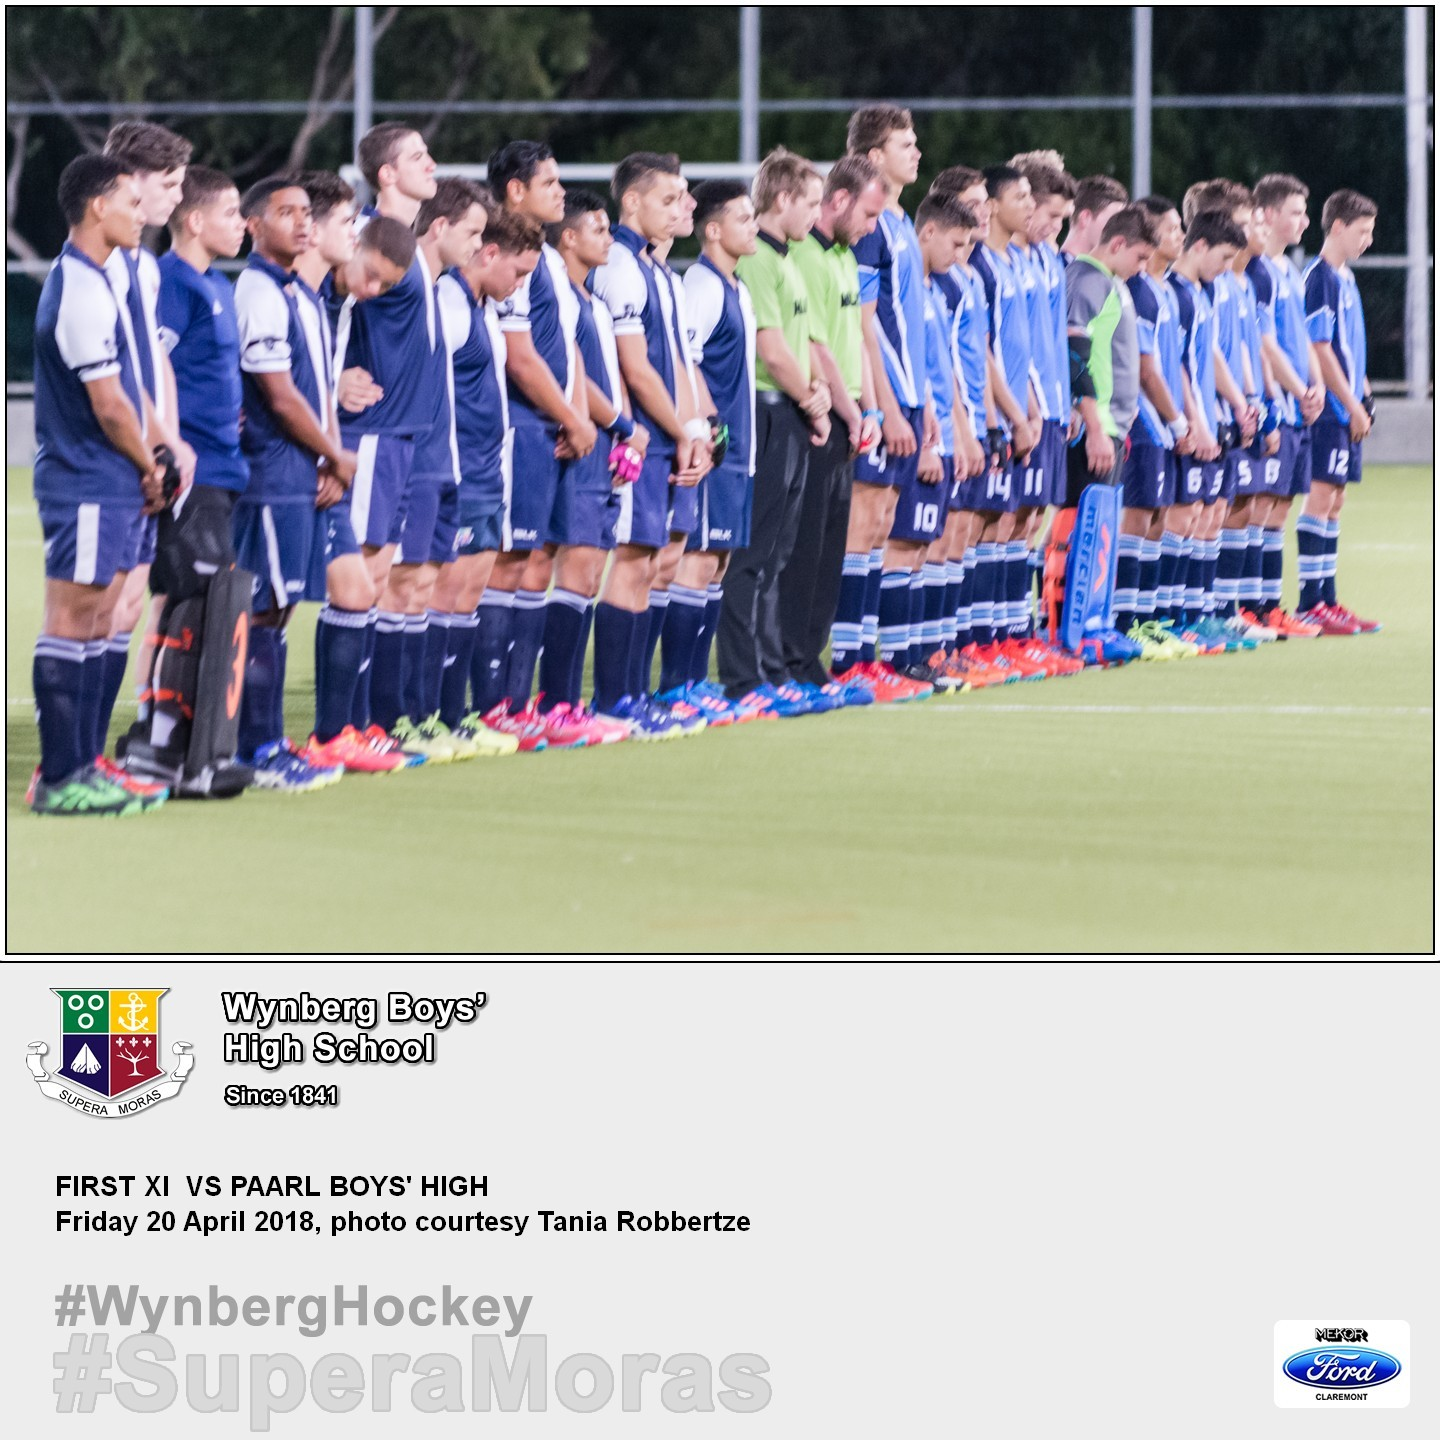 1st XI vs Paarl Boys' High, Friday 20 April 2018